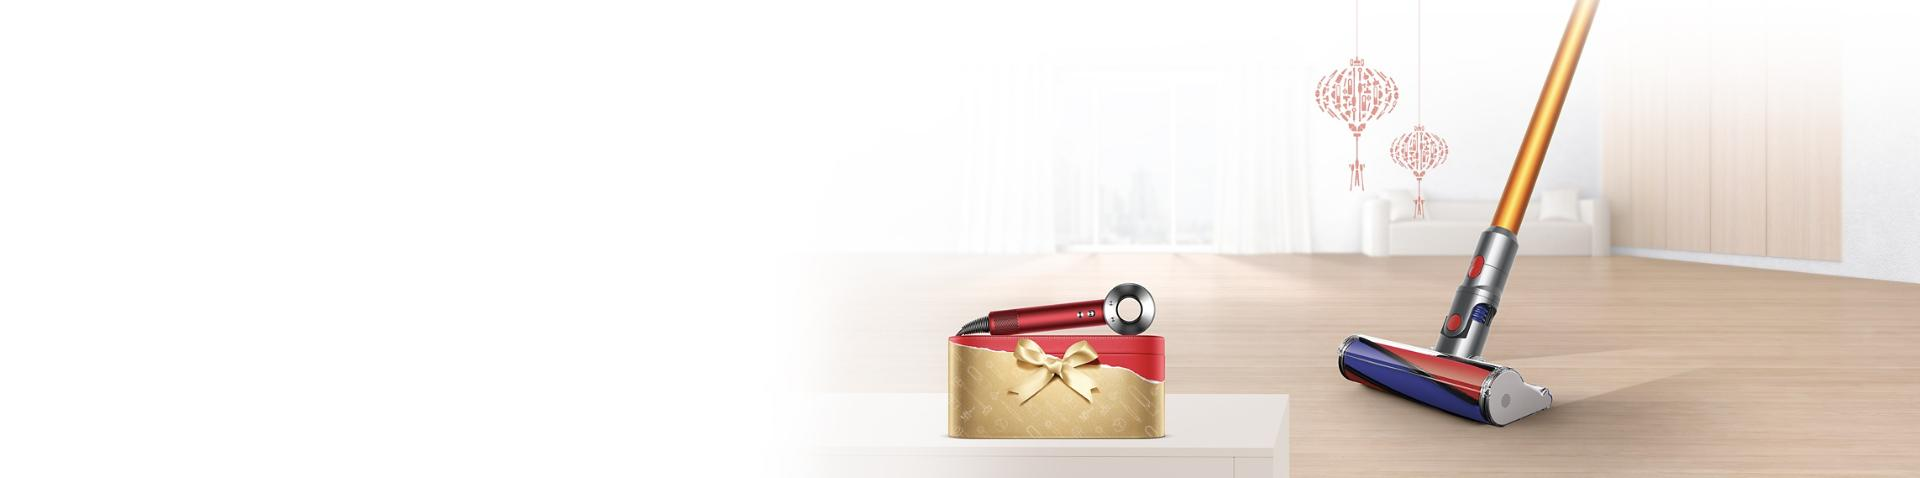 Dyson gifting